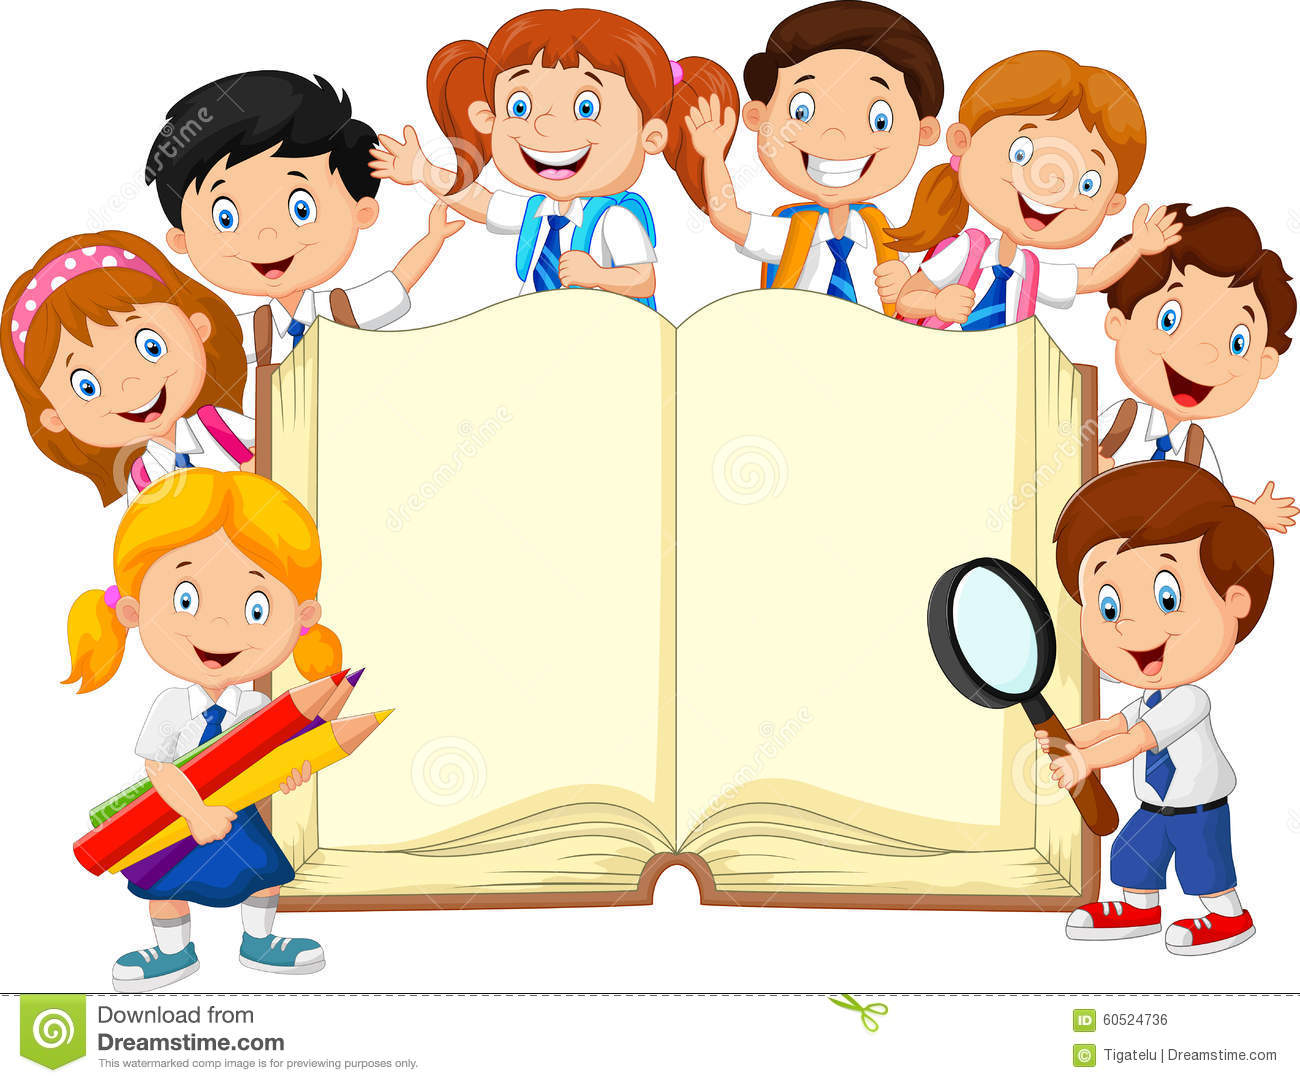 Image result for children school cartoon